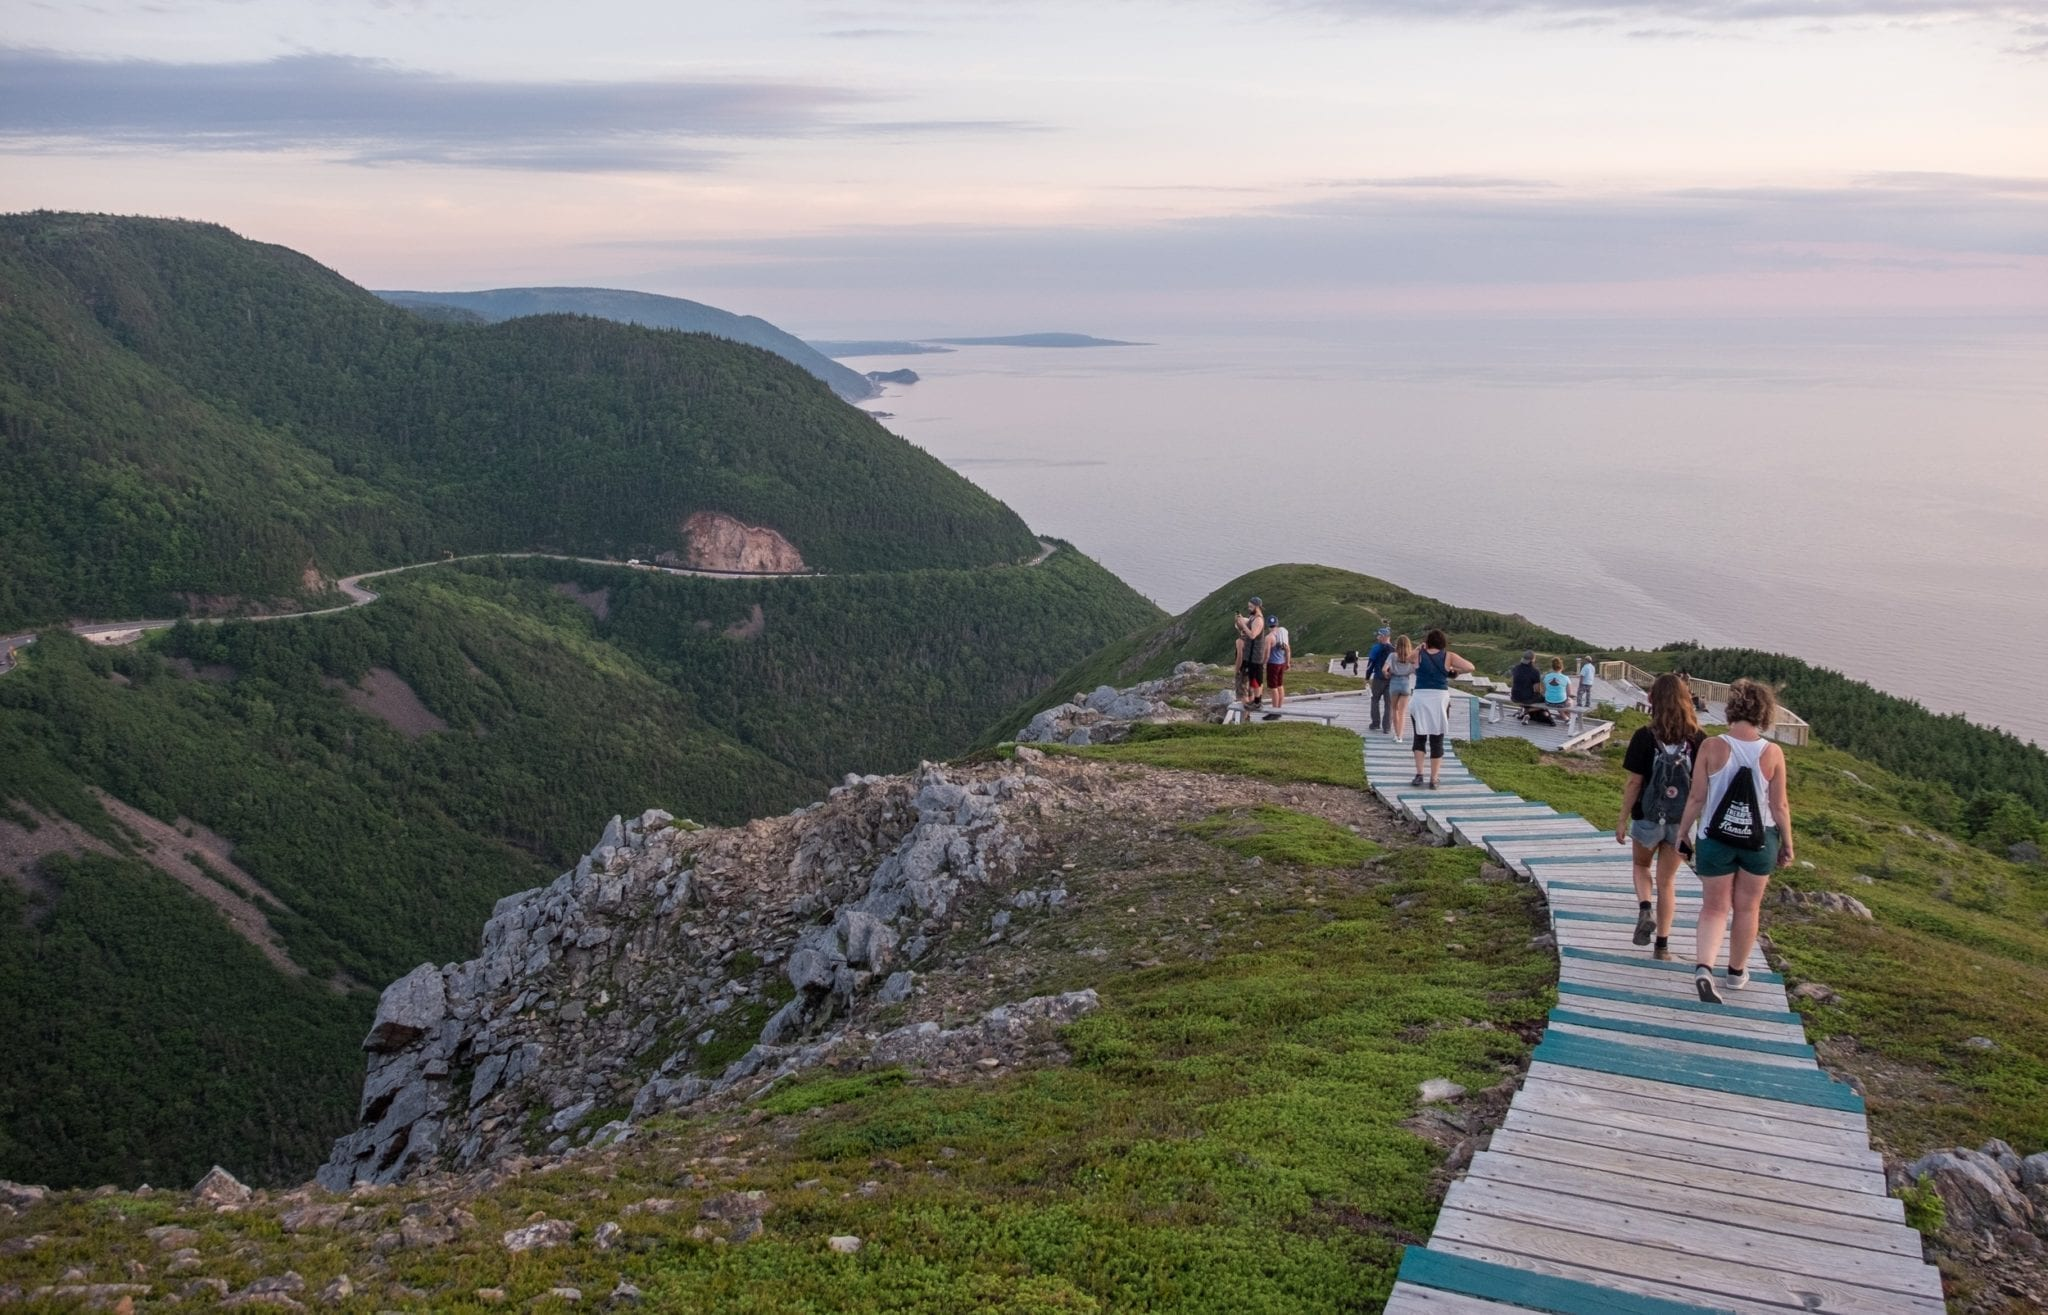 A staircase descending the hills at dusk in Cape Breton Highlands National Park